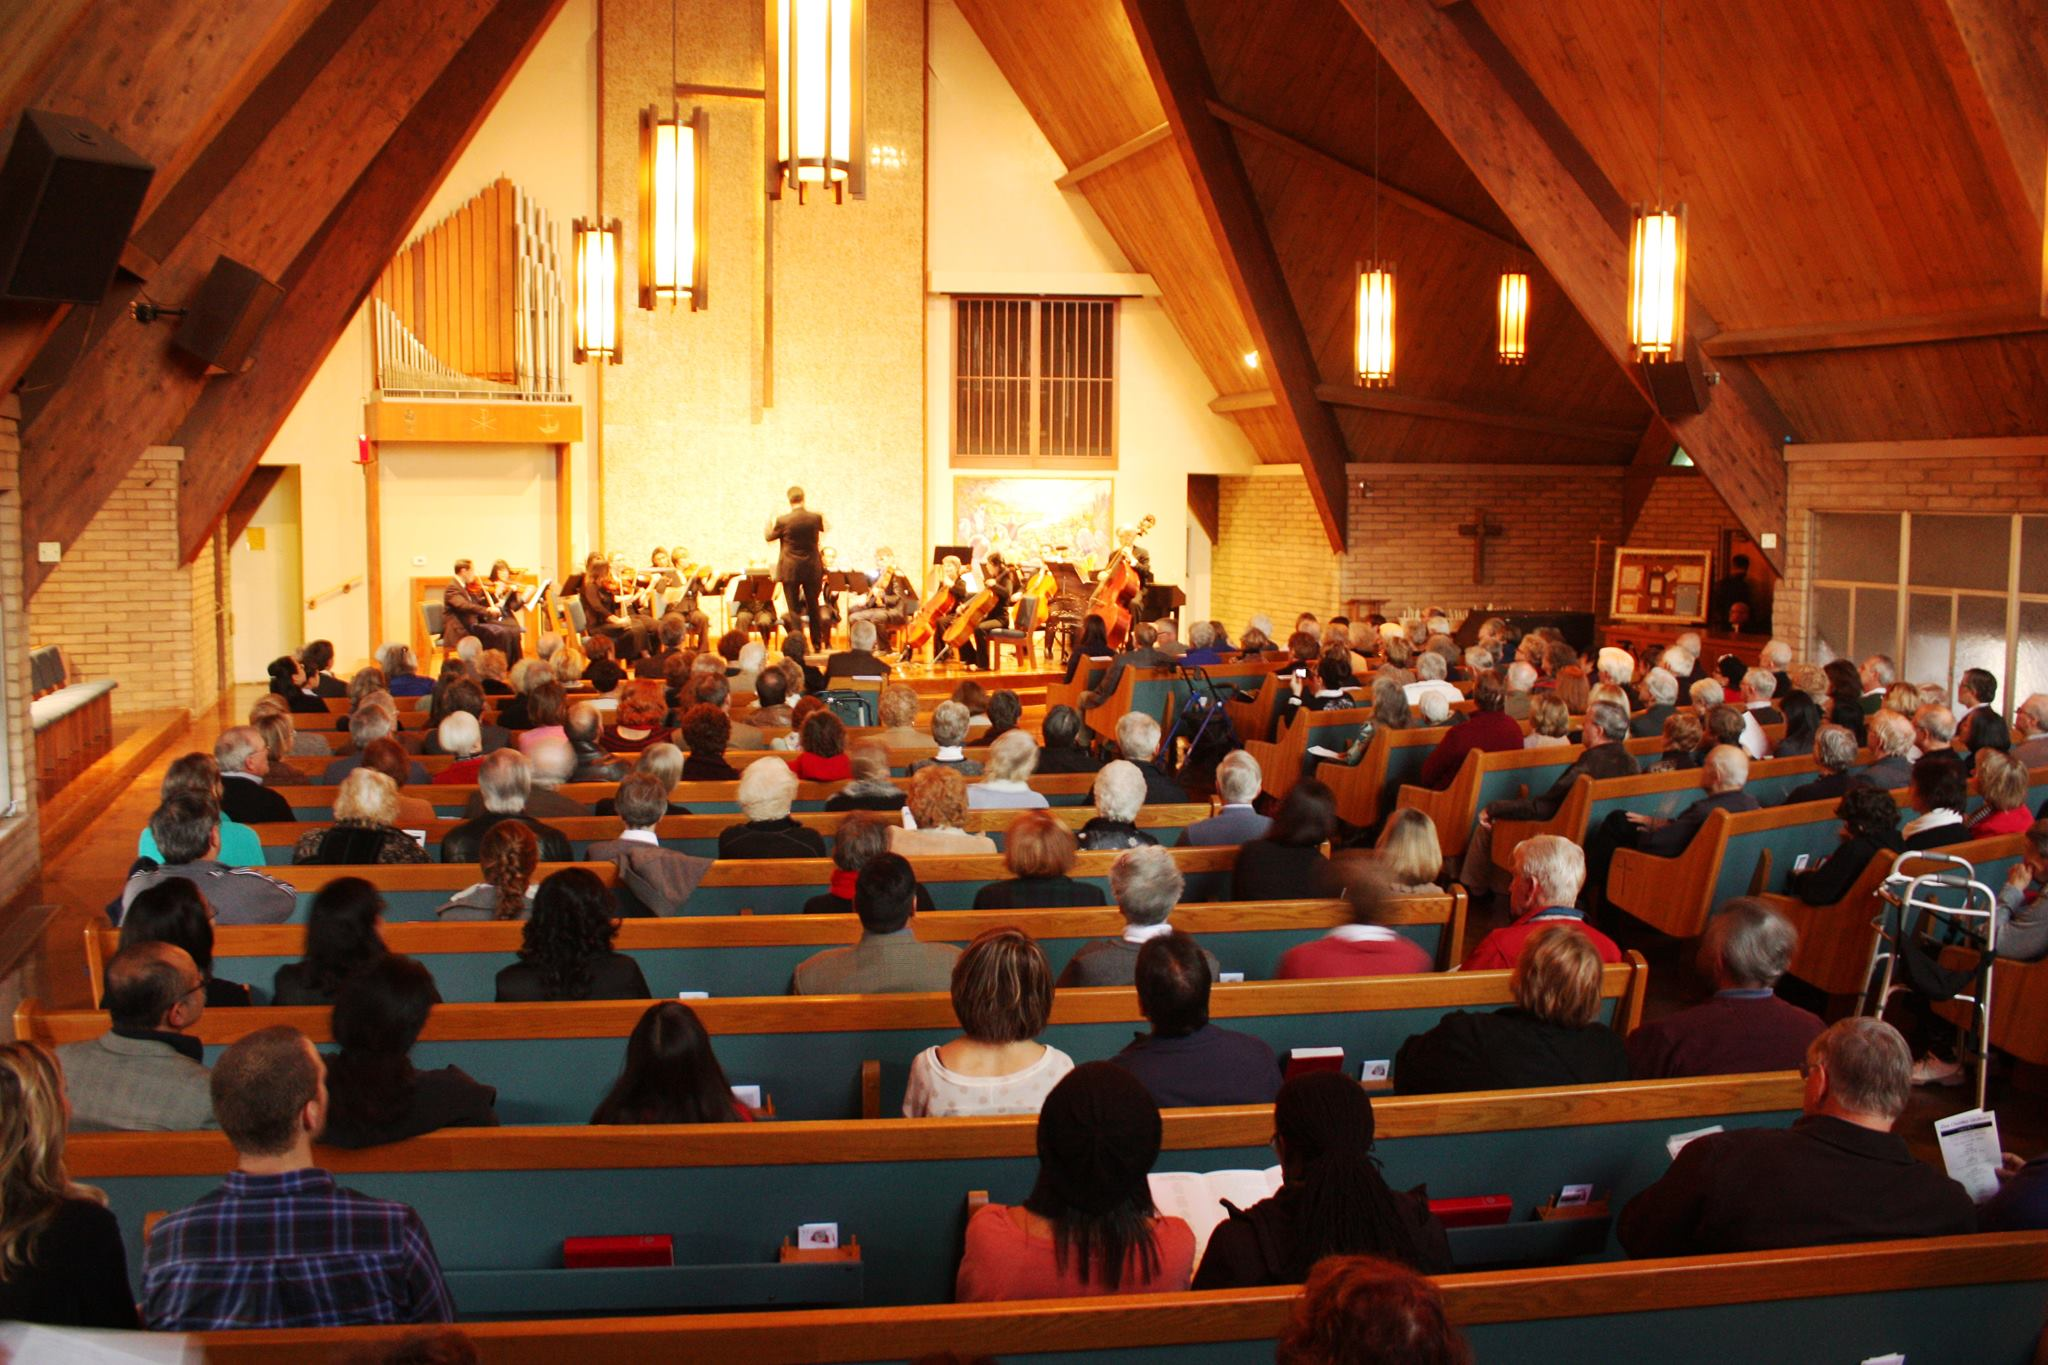 Zion chamber orchestra festival zion lutheran church of for Chamber orchestra